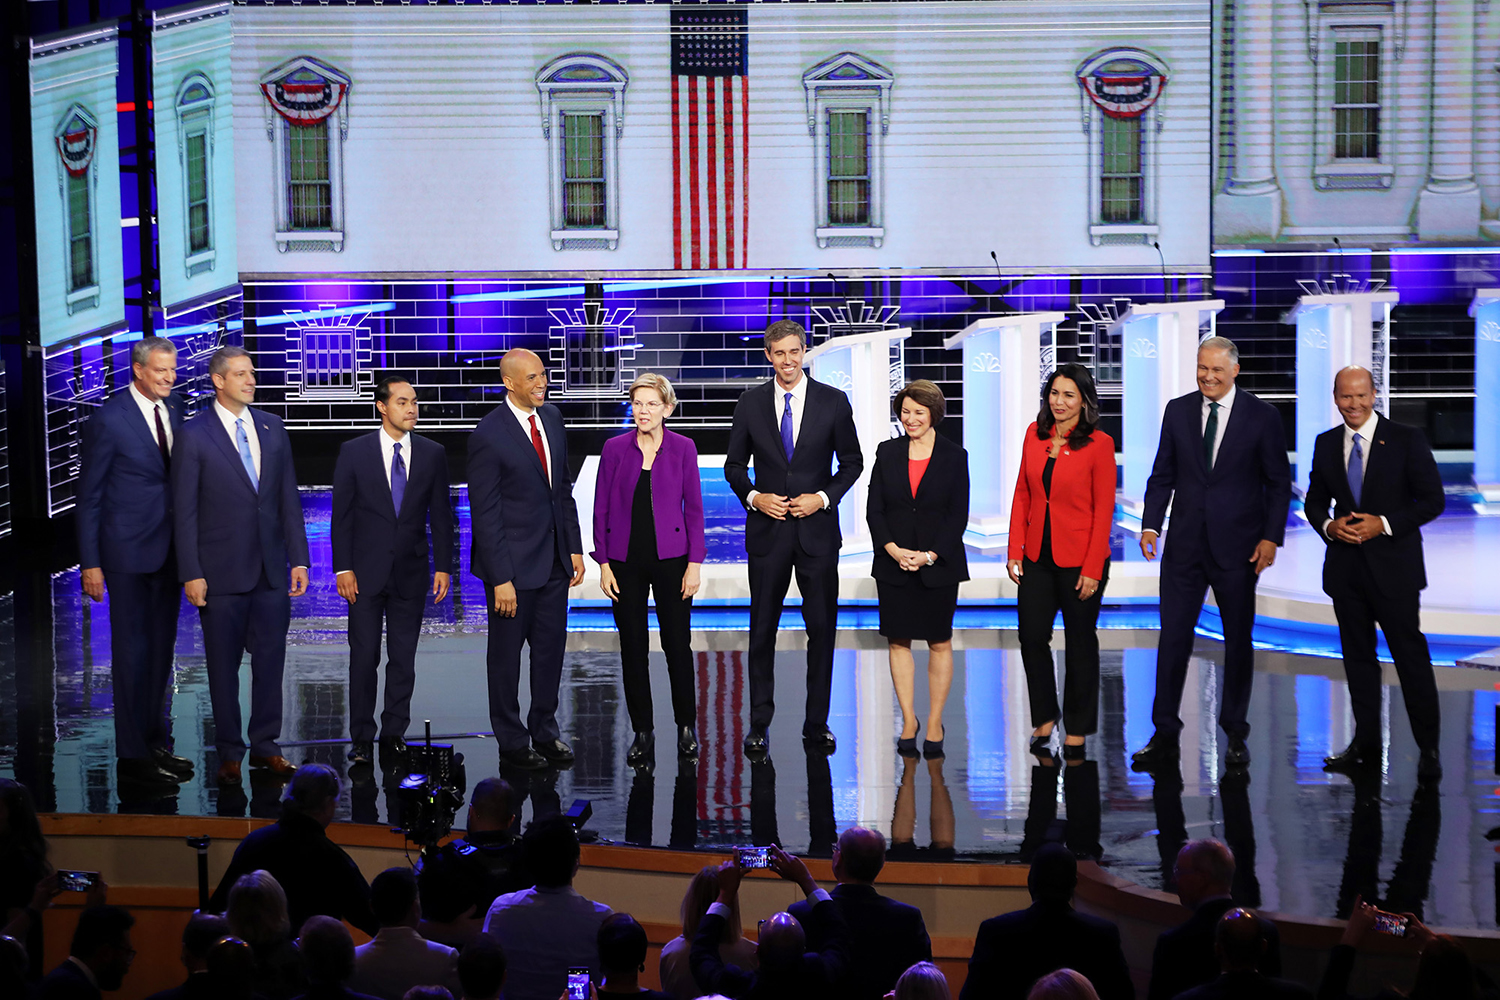 From left, Democratic presidential candidates New York City Mayor Bill De Blasio, Rep. Tim Ryan (D-Ohio), former housing secretary Julian Castro, Sen. Cory Booker (D-N.J.), Sen. Elizabeth Warren (D-Mass.), former Texas congressman Beto O'Rourke, Sen. Amy Klobuchar (D-Minn.), Rep. Tulsi Gabbard (D-Hawaii), Washington Gov. Jay Inslee, and former Maryland congressman John Delaney take the stage during the first night of the Democratic presidential debate on Wednesday, June 26, 2019, in Miami. (Joe Raedle/Getty Images/TNS) **FOR USE WITH THIS STORY ONLY**